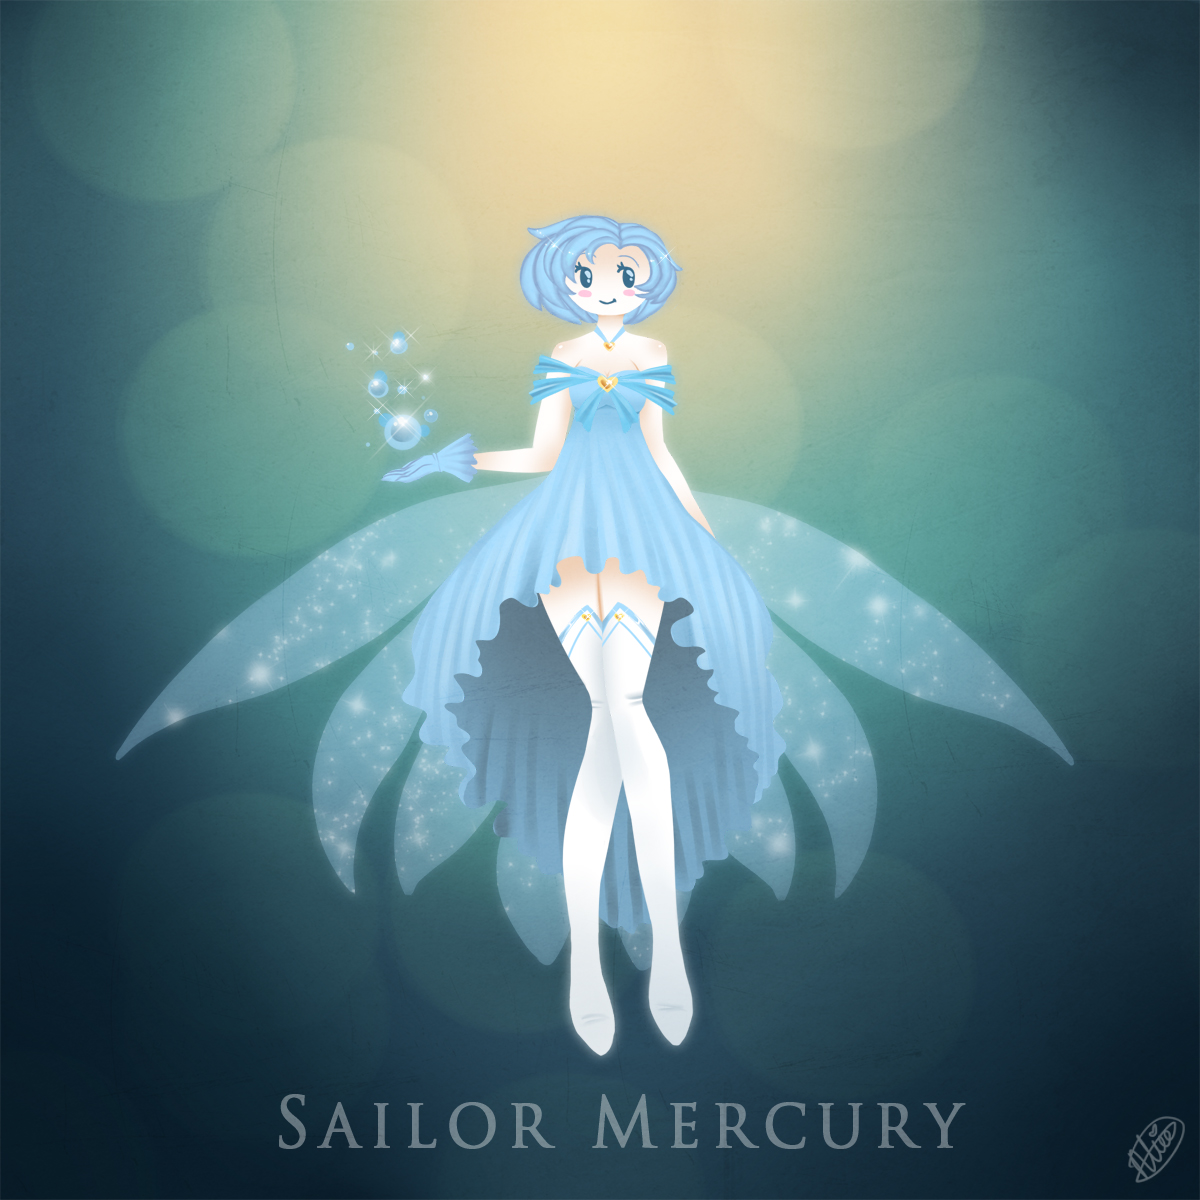 Sailor Collection: Sailor Mercury by McMugget